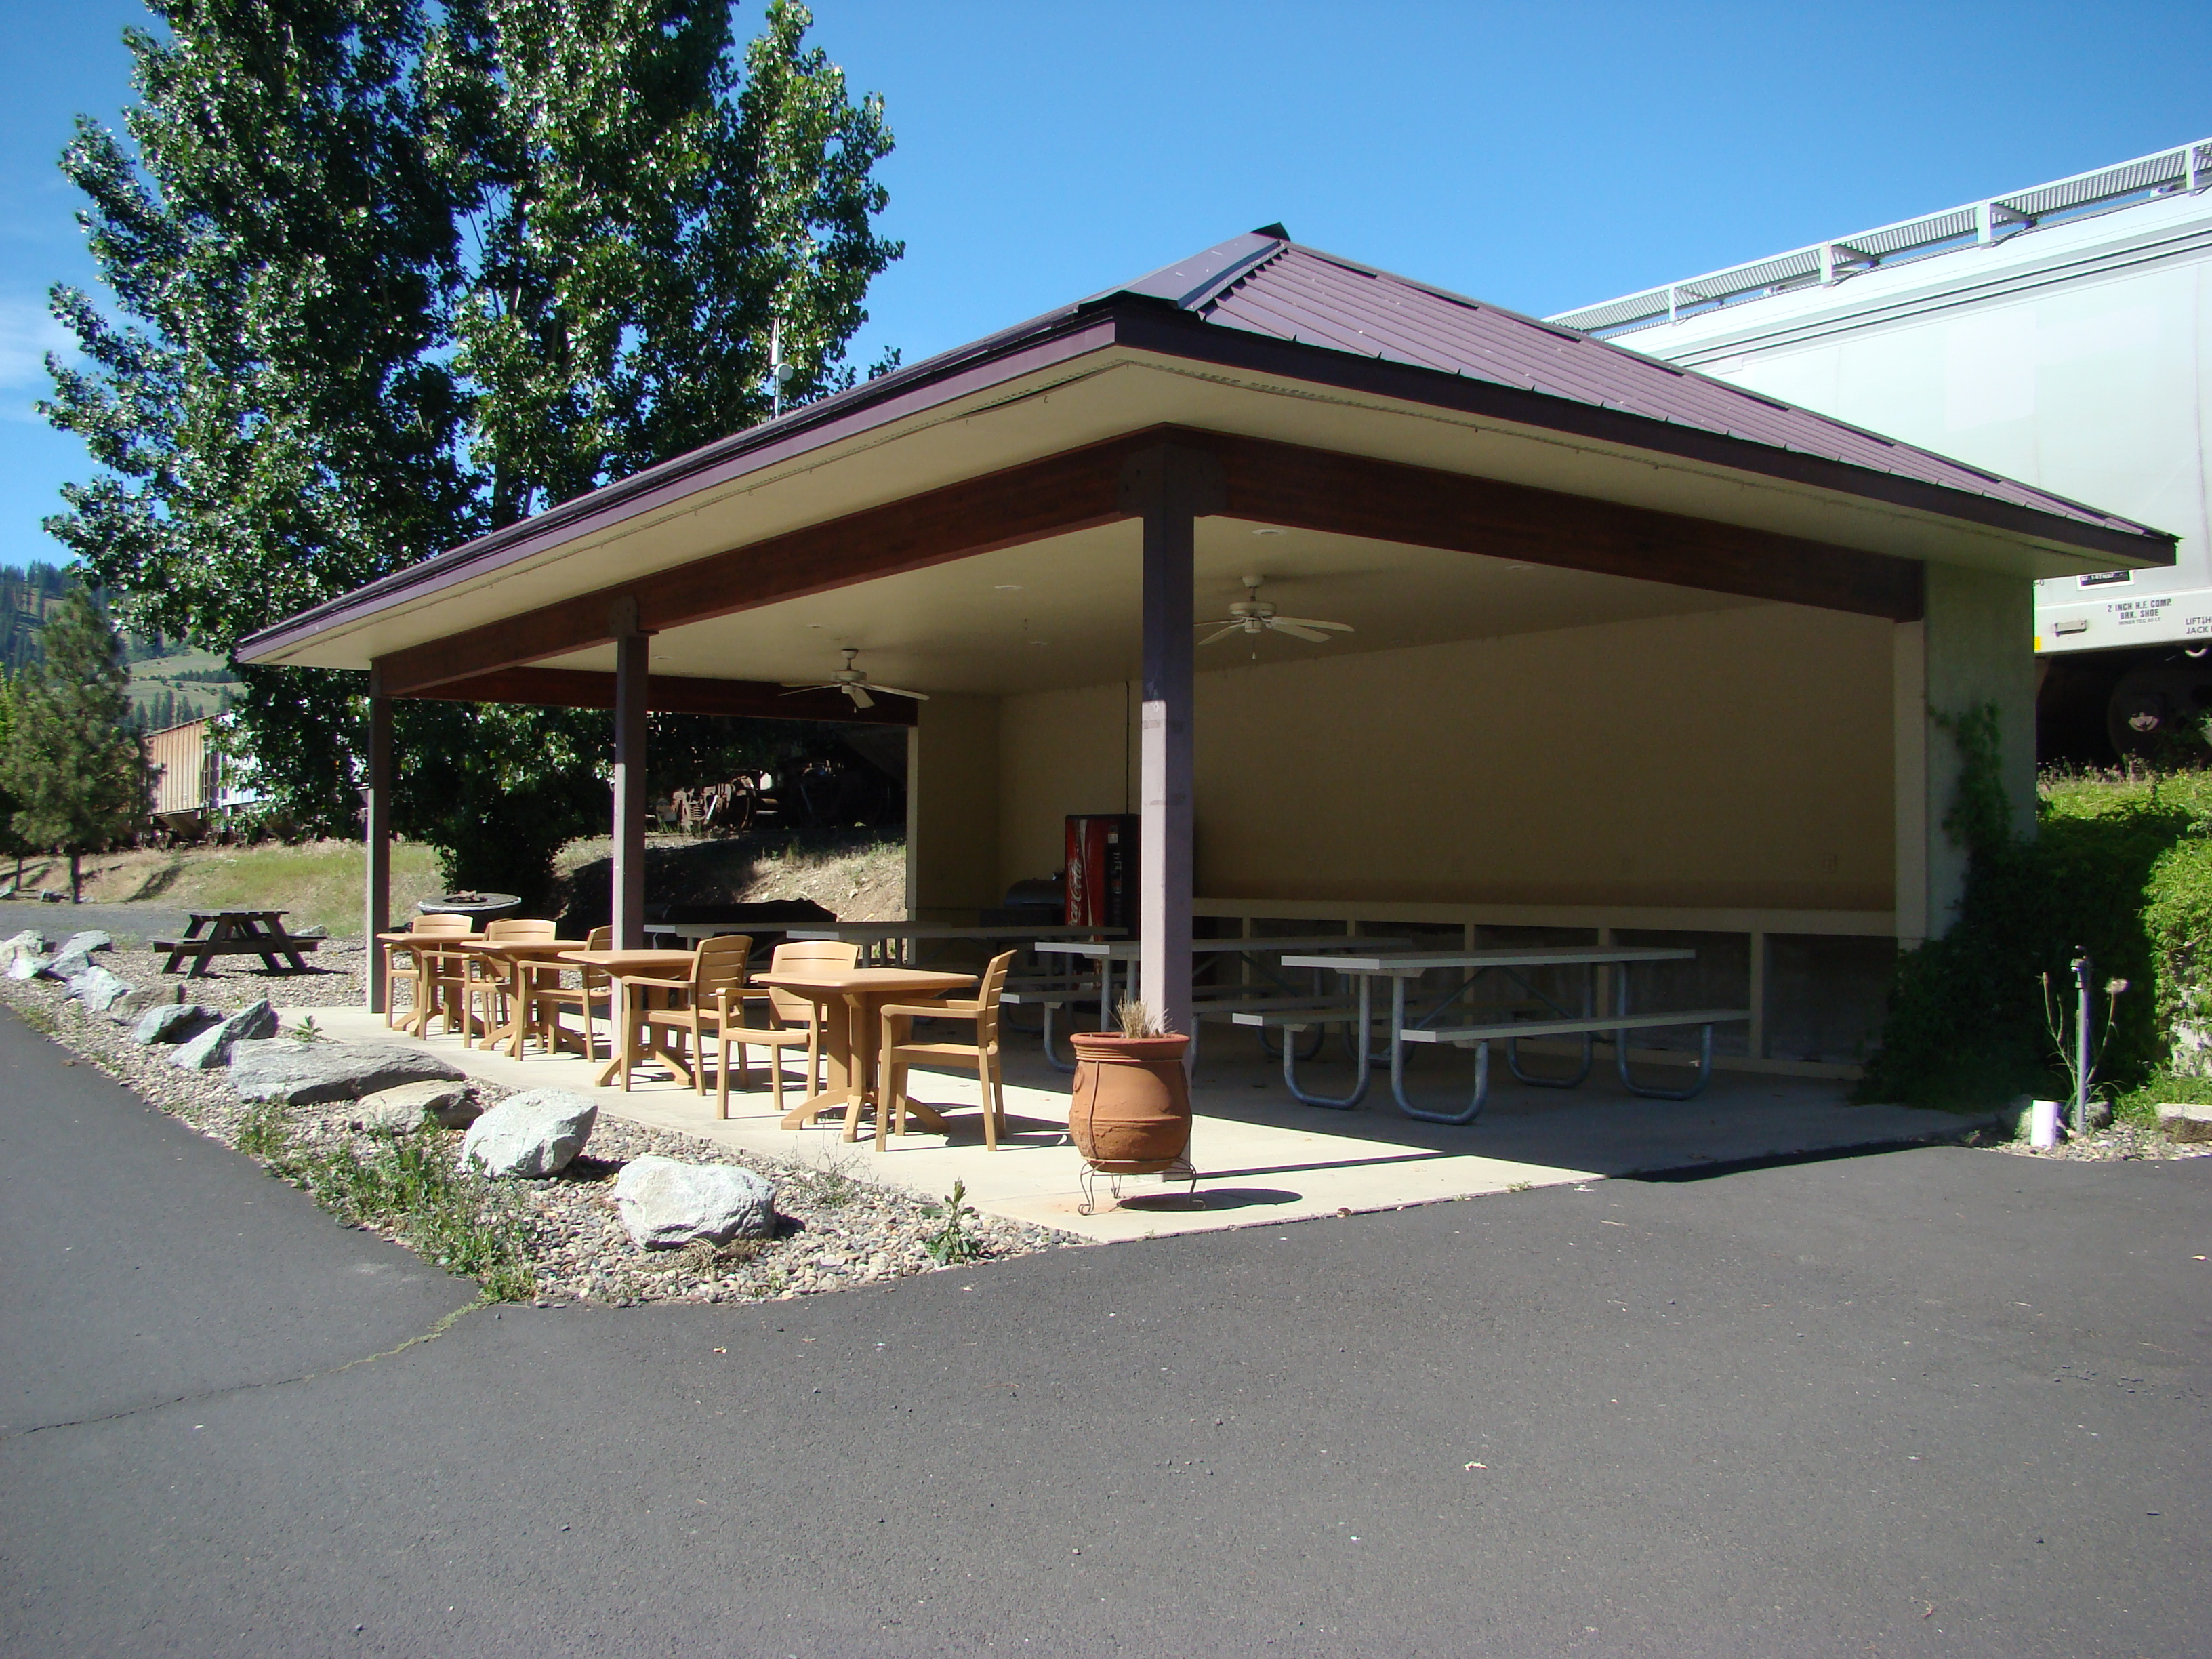 Pavillion Day Rental Rates & Camper Storage Now Available!